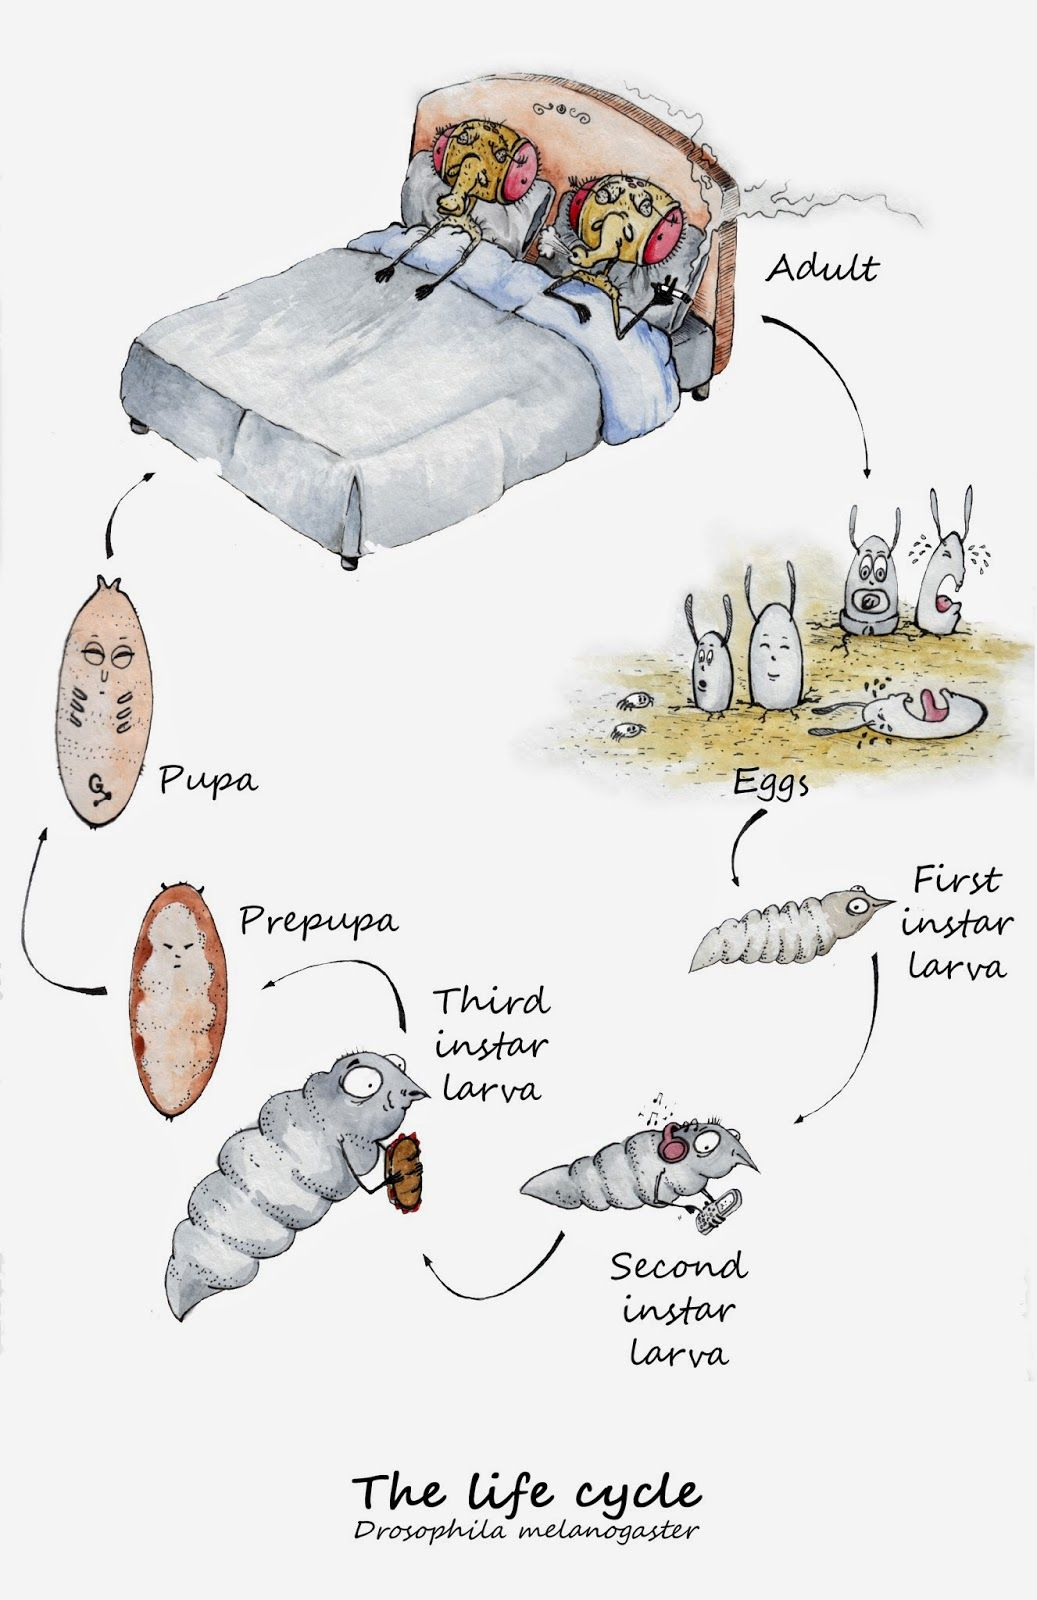 this is the most classic fruit fly drosophila melanogaster drosophila drawings the drosophila life cycle